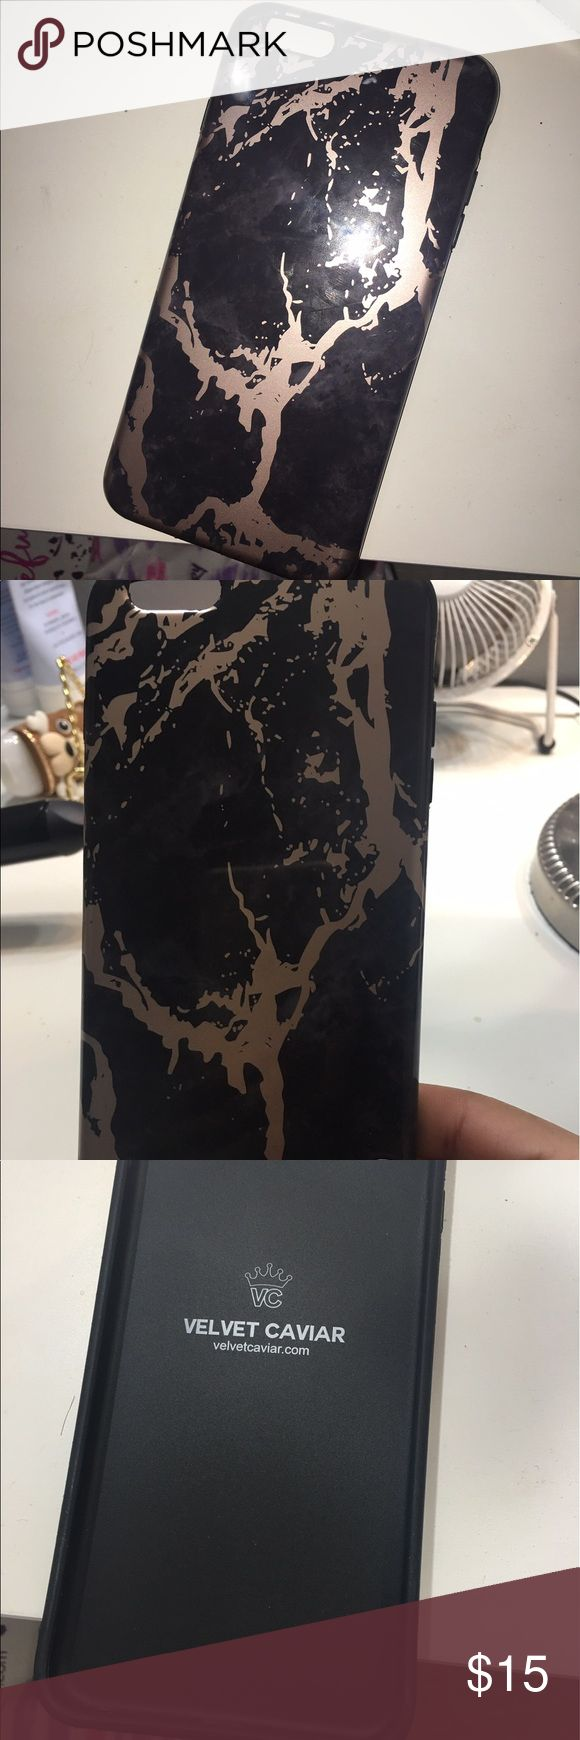 iPhone 6s Plus phone case Velvet Caviar black marble rose gold chrome has couple of scratches but nothing too crazy a great case all in all very good quality velvet caviar Other